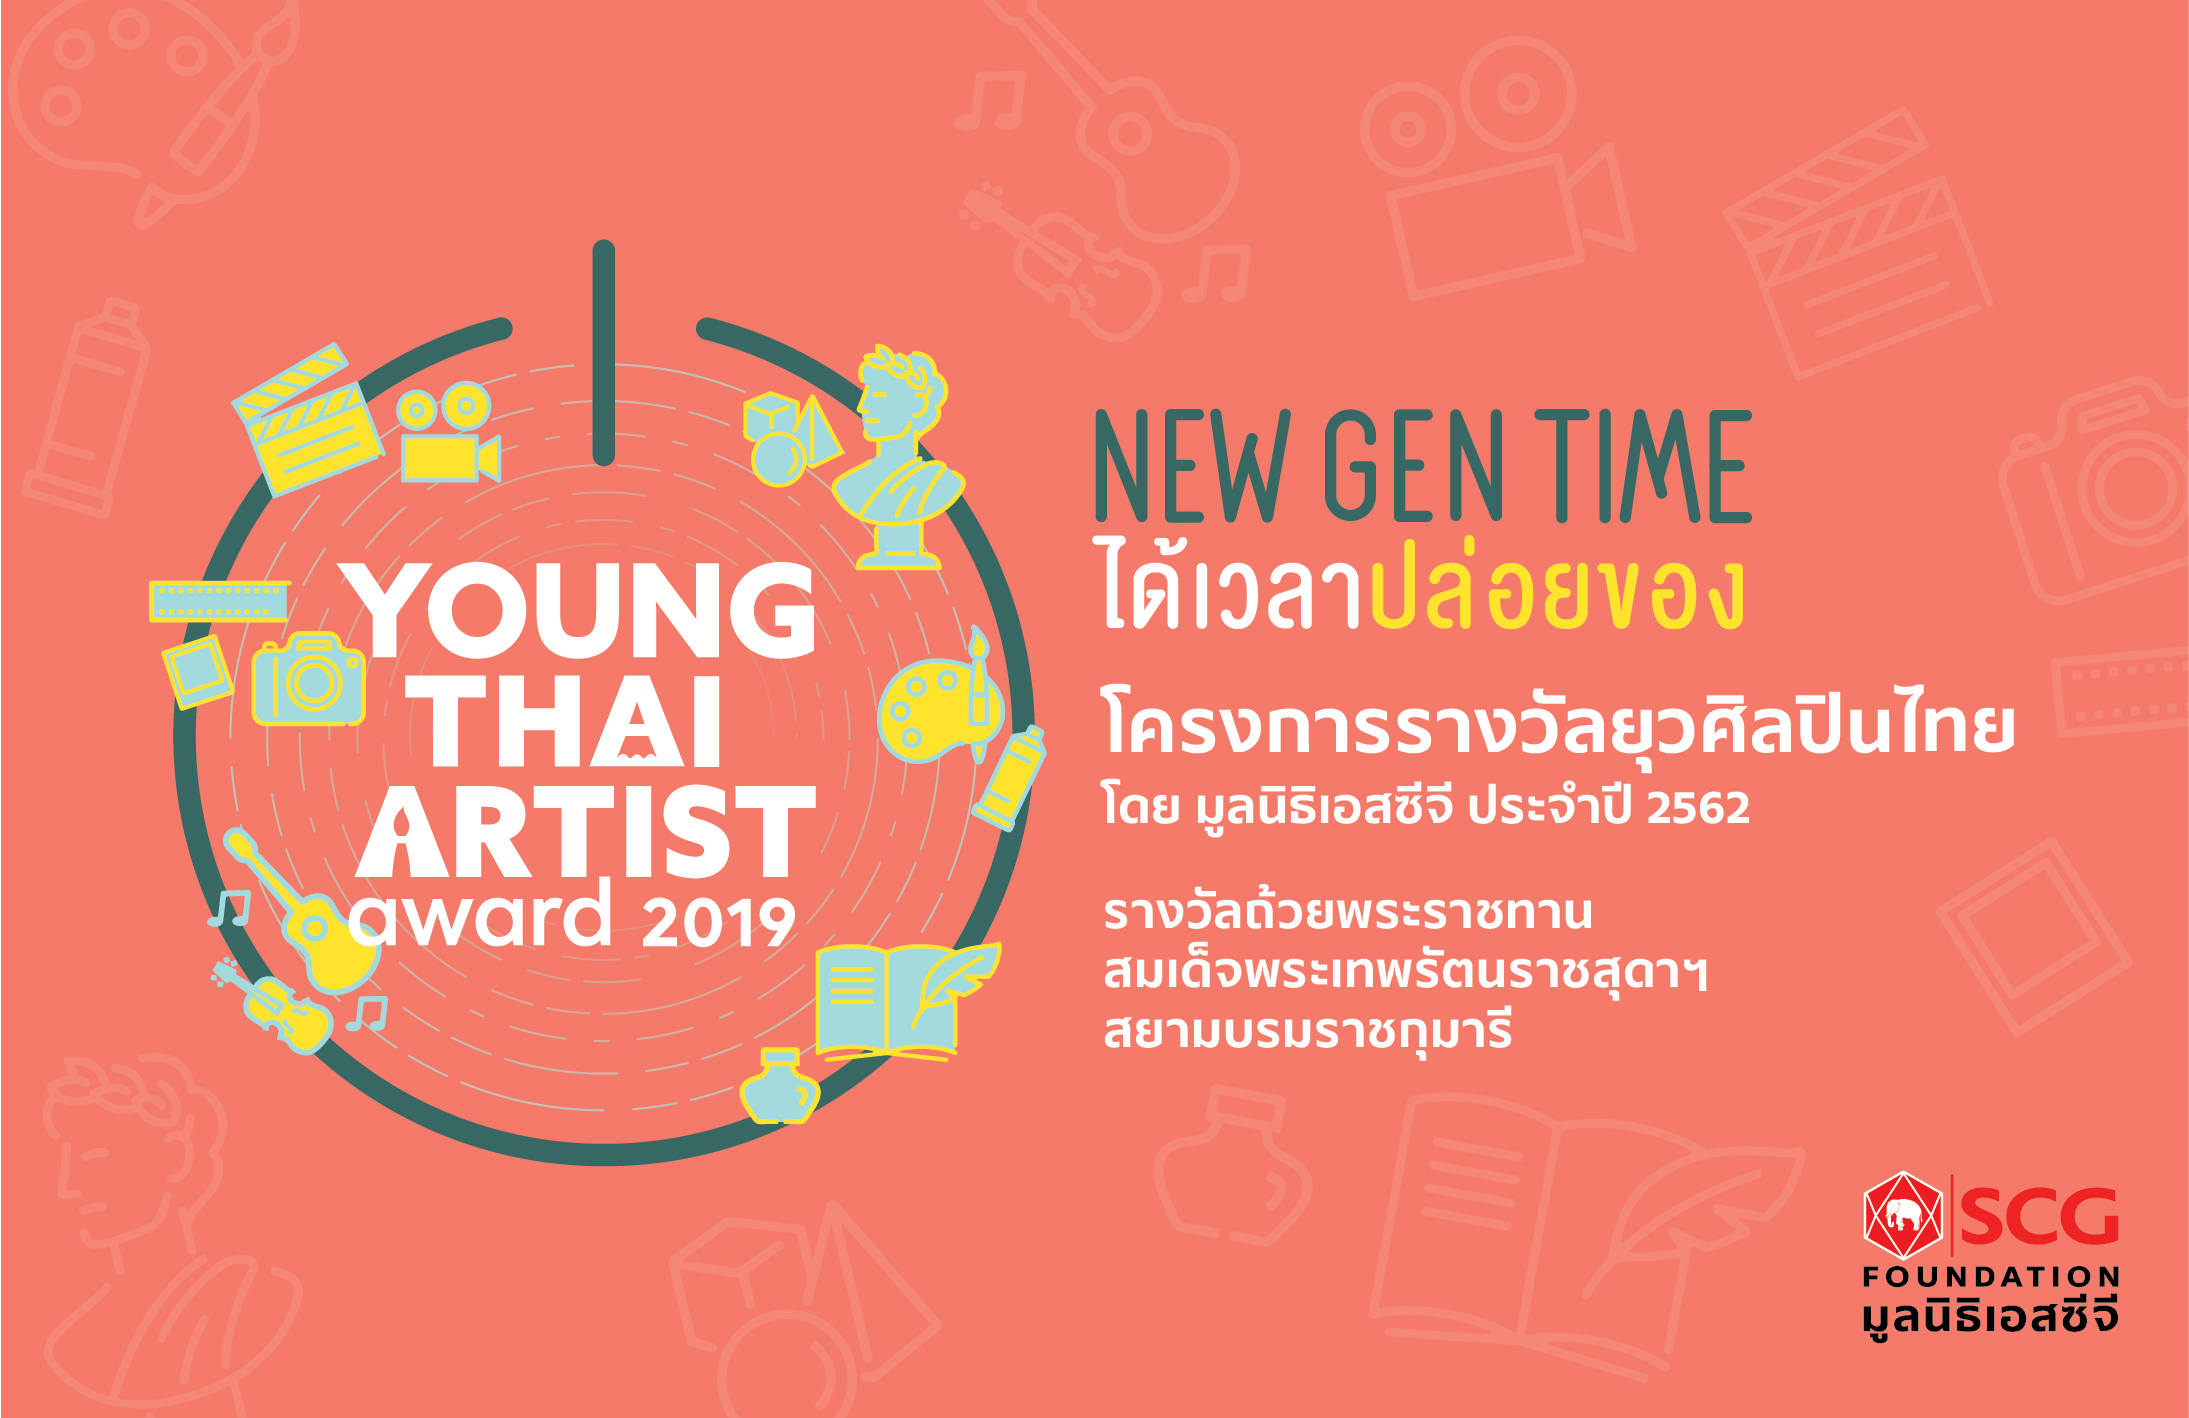 Young Thai Artist Award 2019